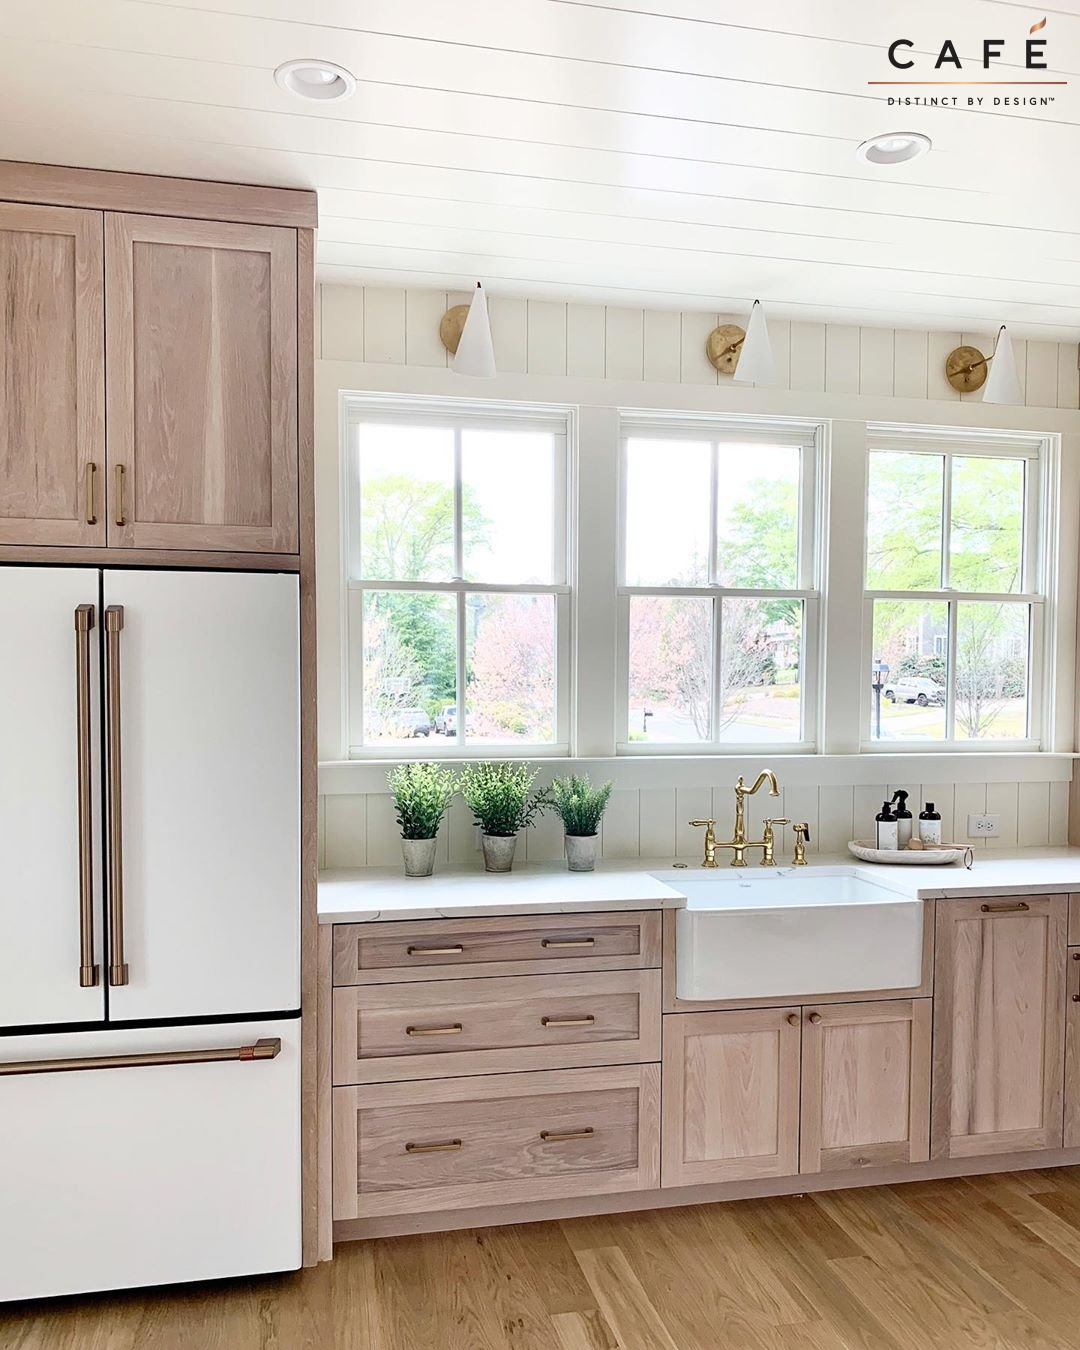 The Morning Light In This Warm Kitchen With Matte White Cafe Appliances Designed By Linen Flax In 2020 Light Kitchen Cabinets White Kitchen Appliances Kitchen Design